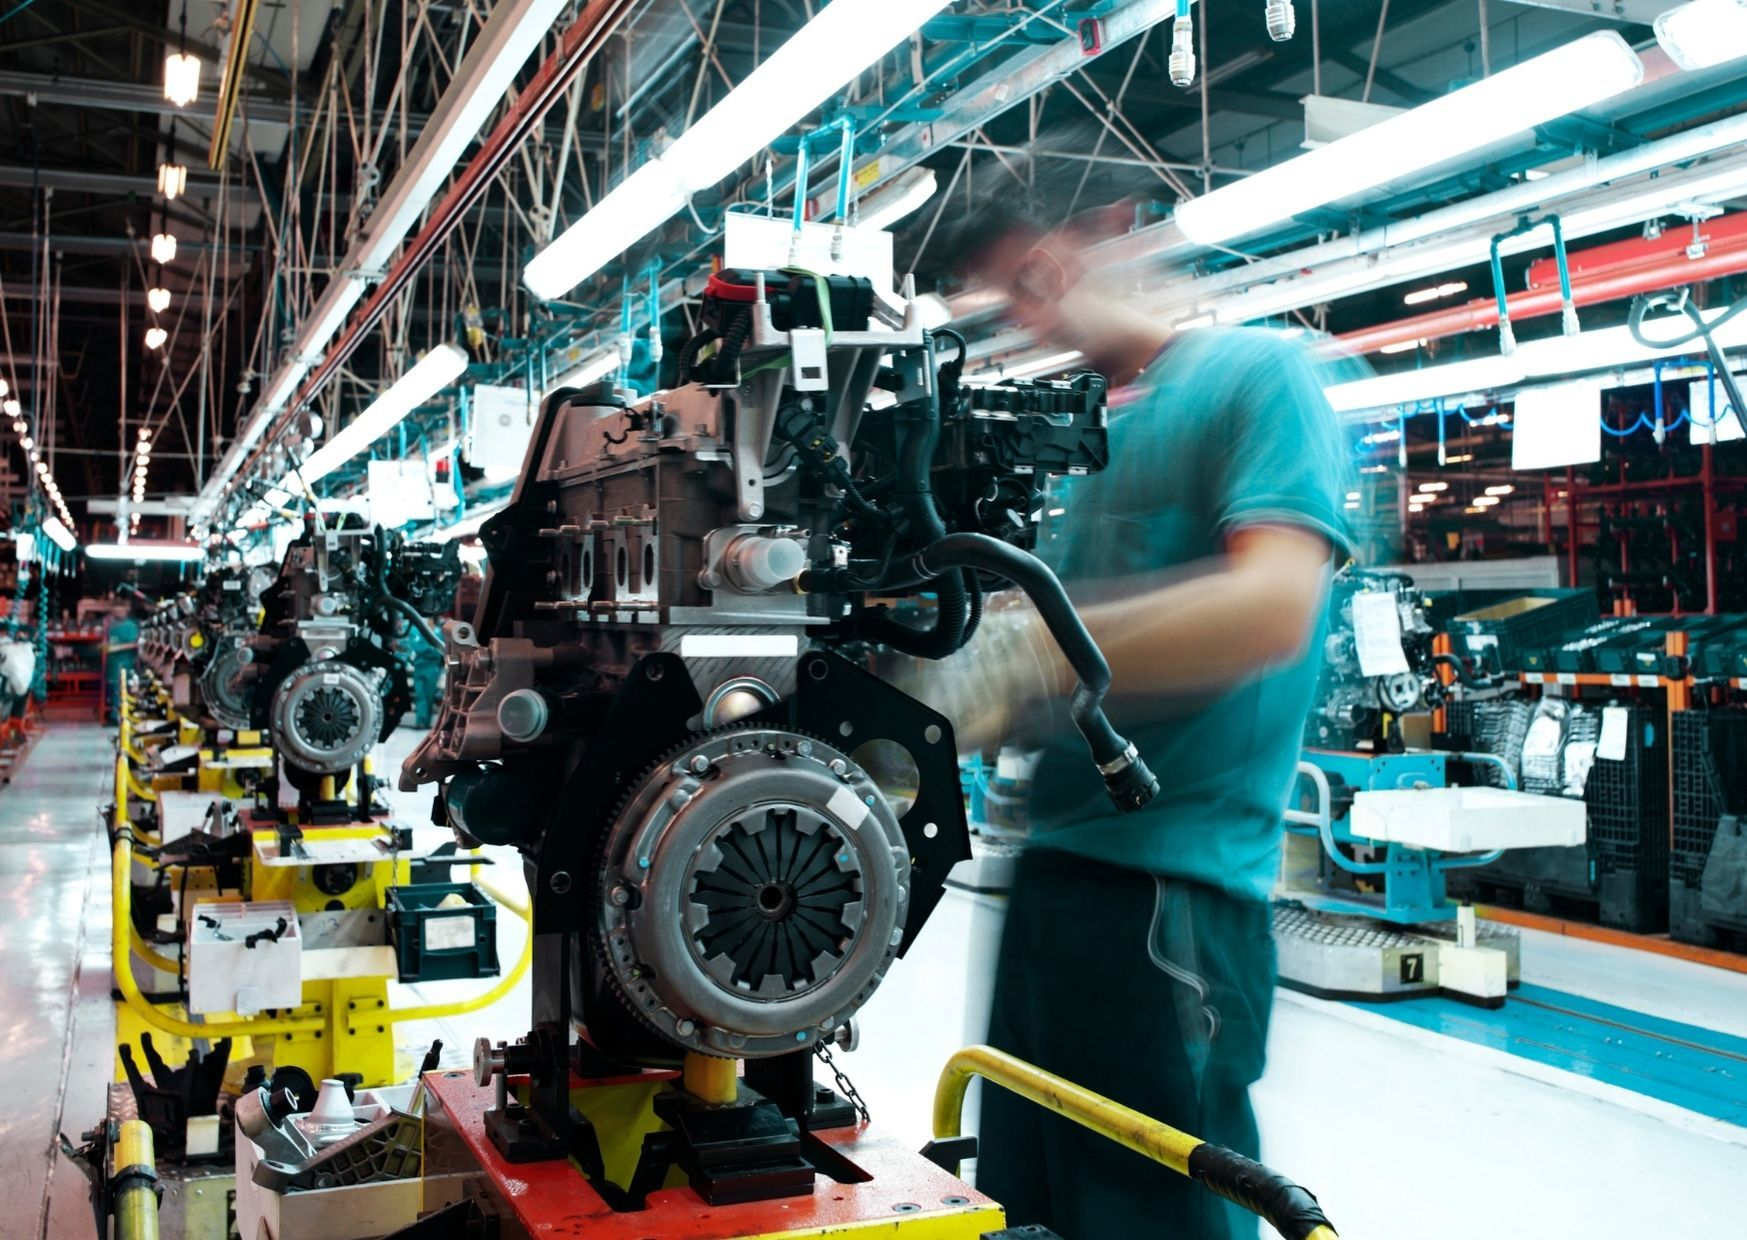 【Aichi, Toyota】 Manufacturing work of auto parts!